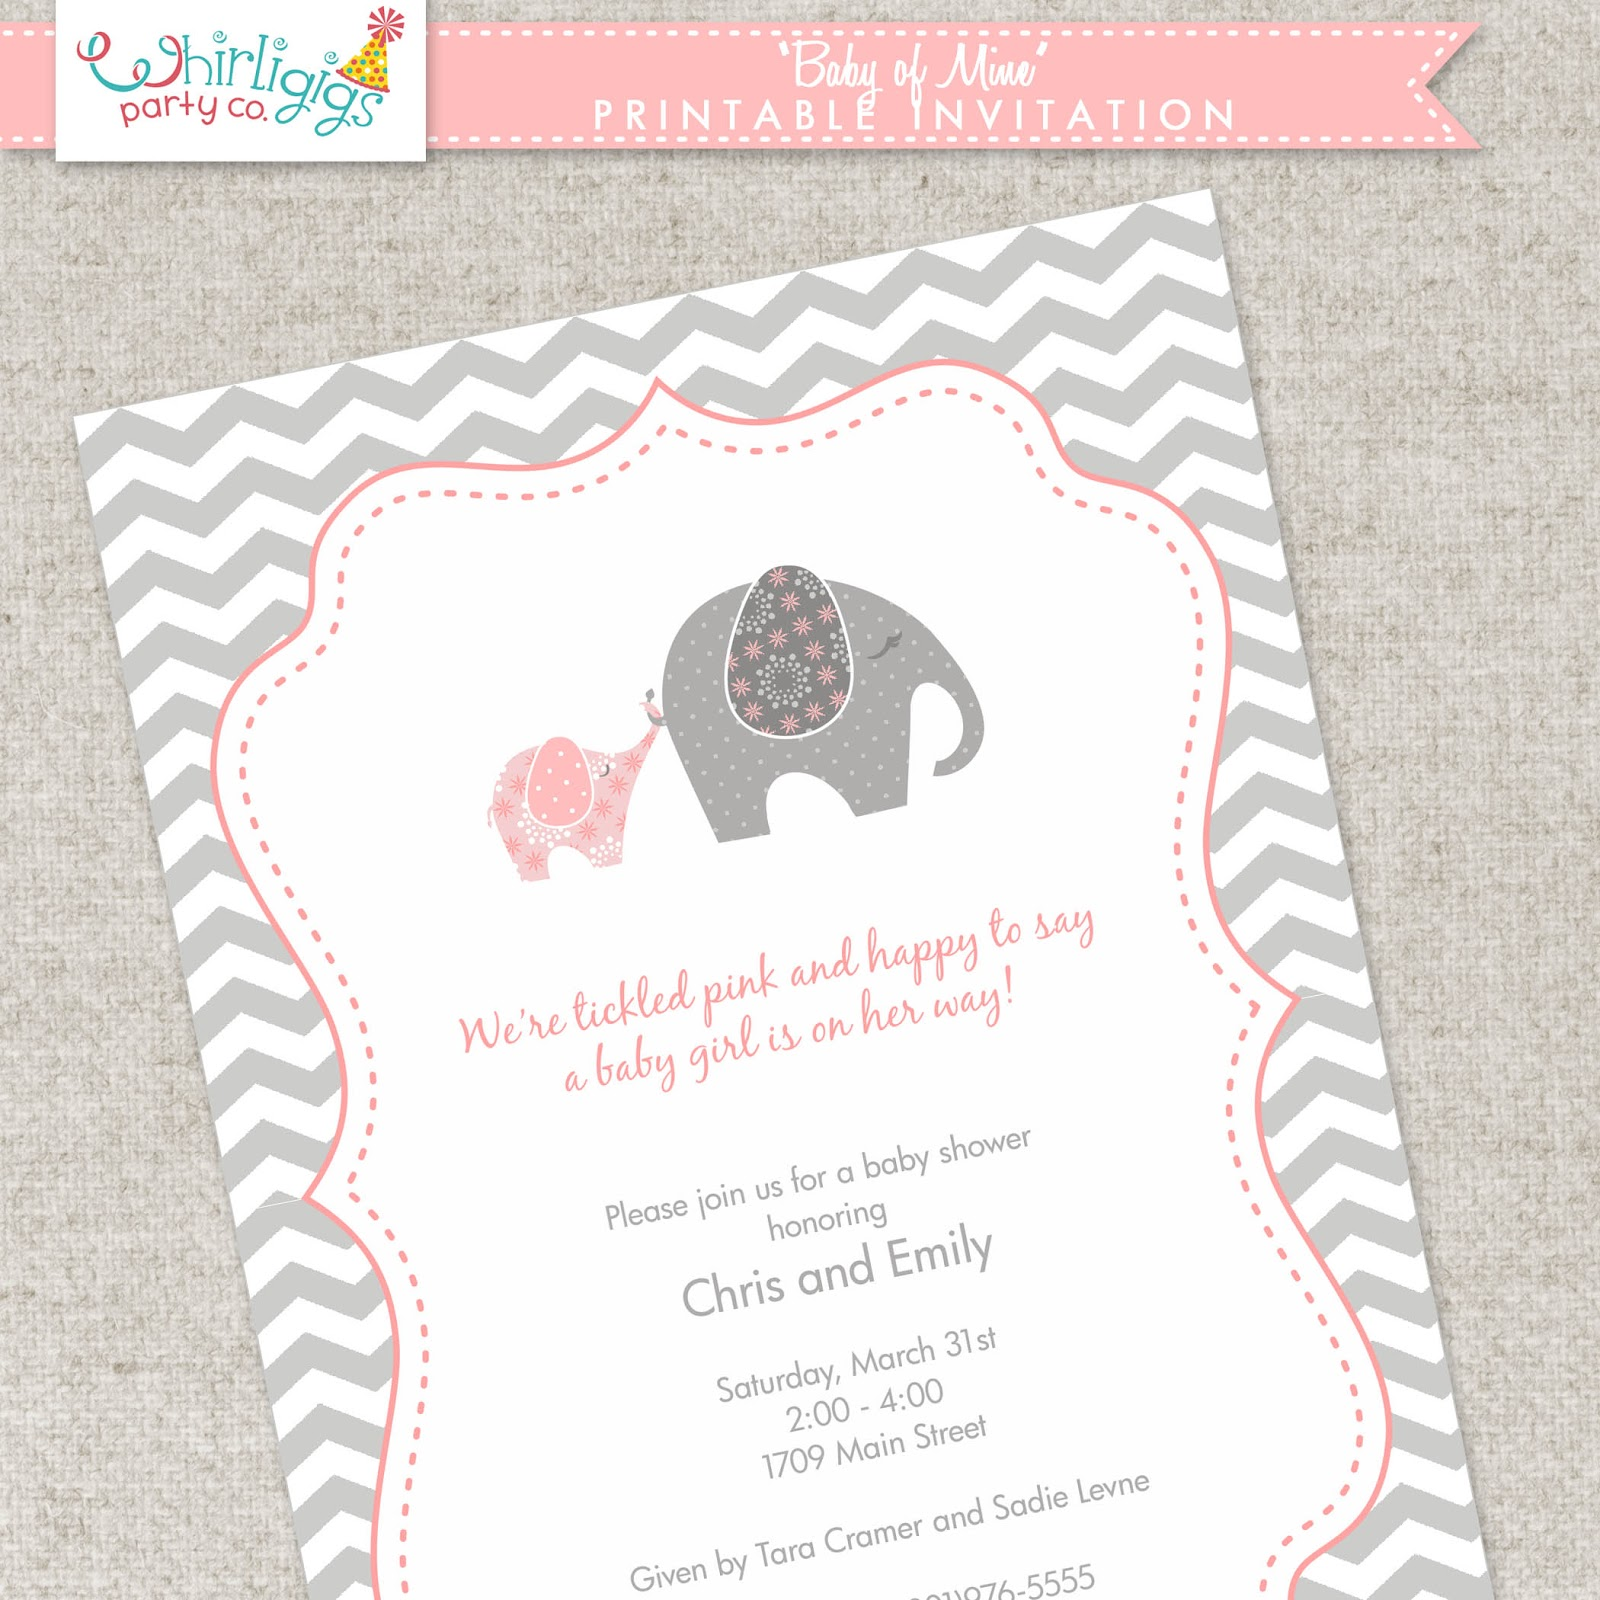 Whirligigs Party Co Elephant Baby Shower